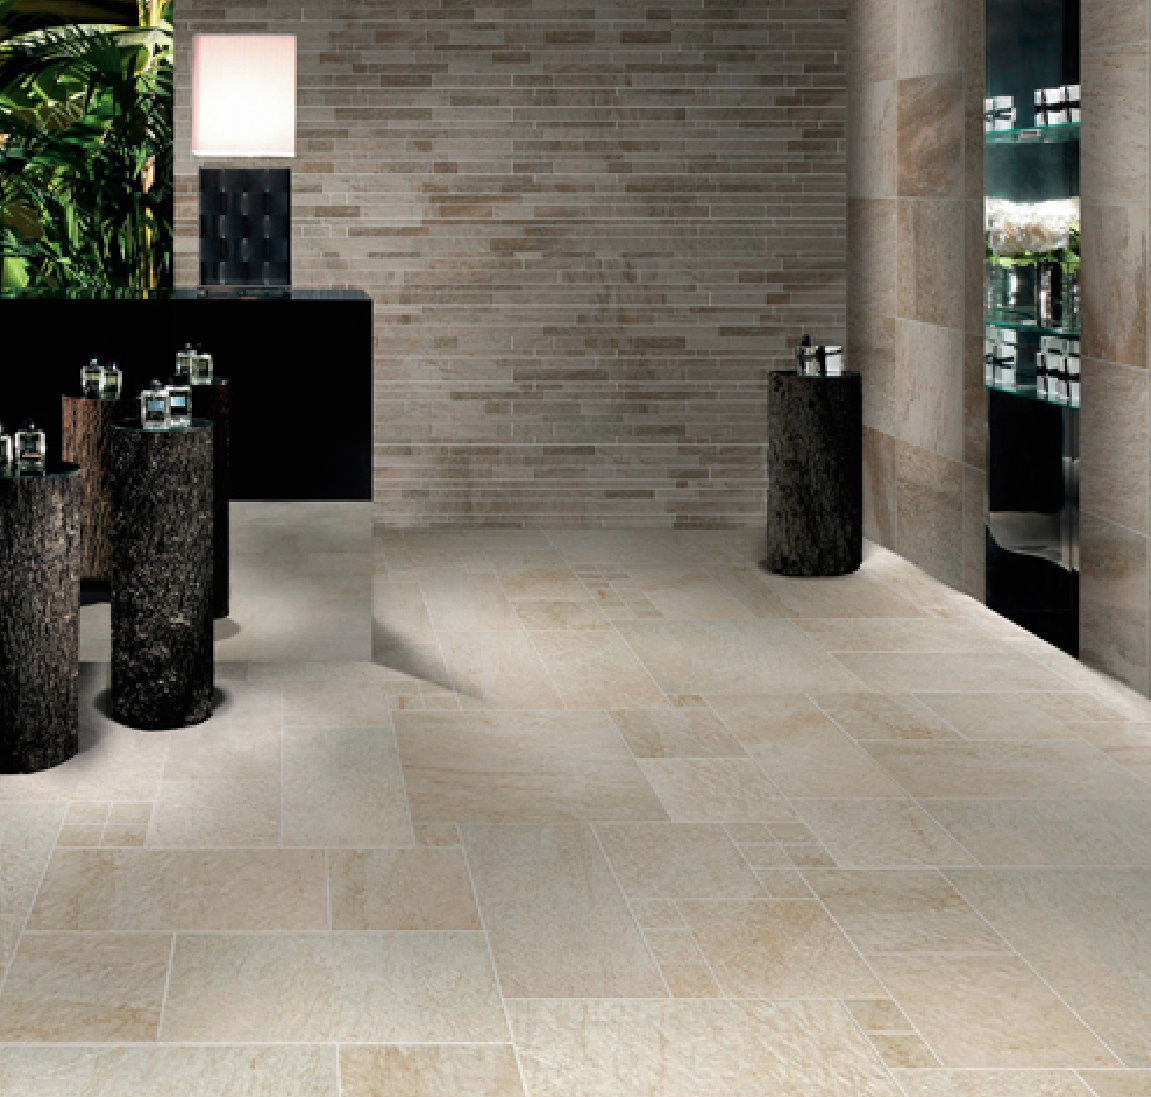 Italian architectural floor and wall tiles from Dream Tiles of Bicester Oxfordshire